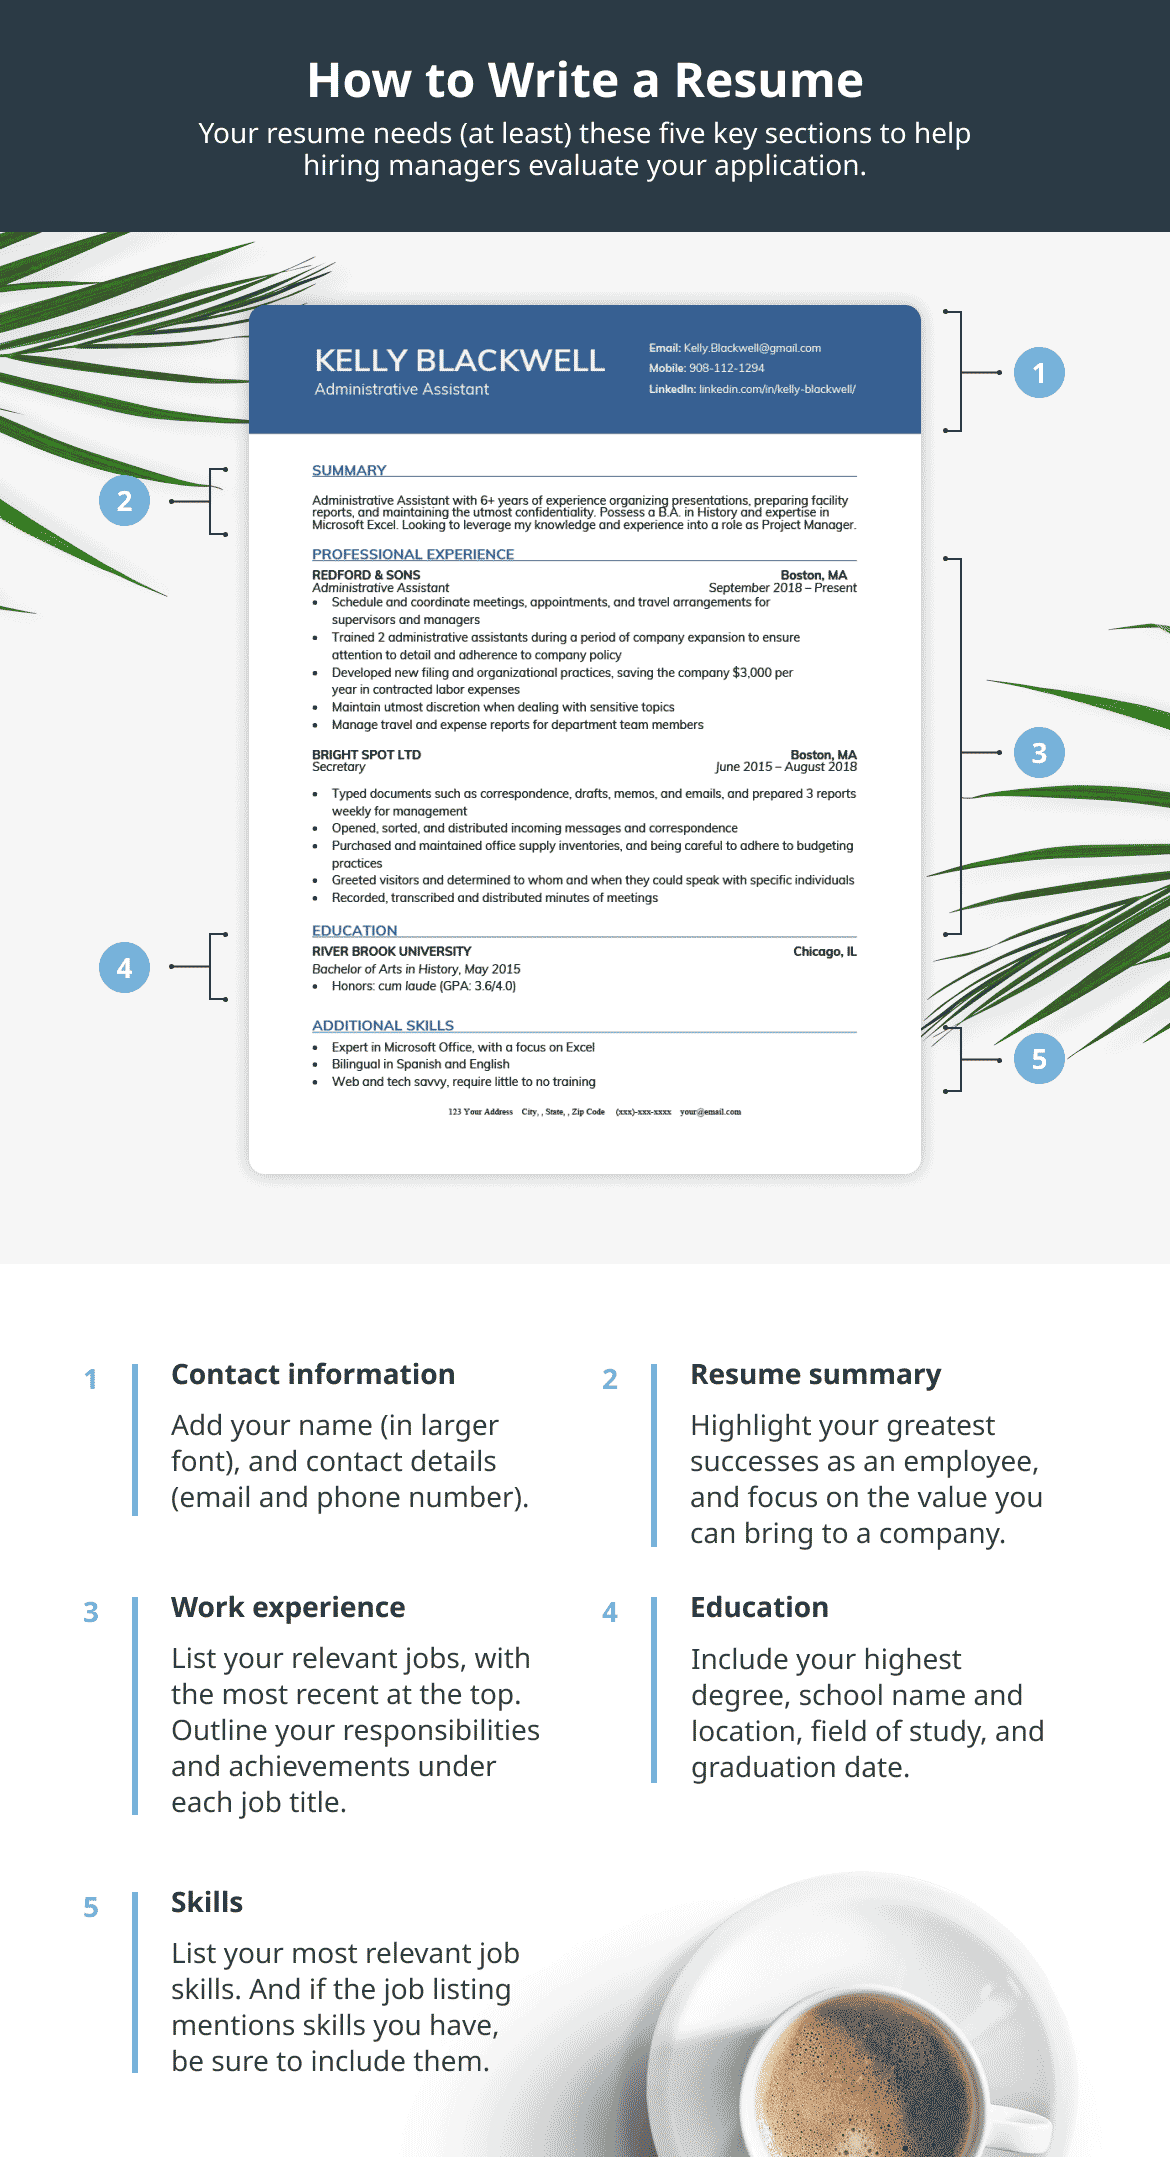 An infographic explaining how to write a resume